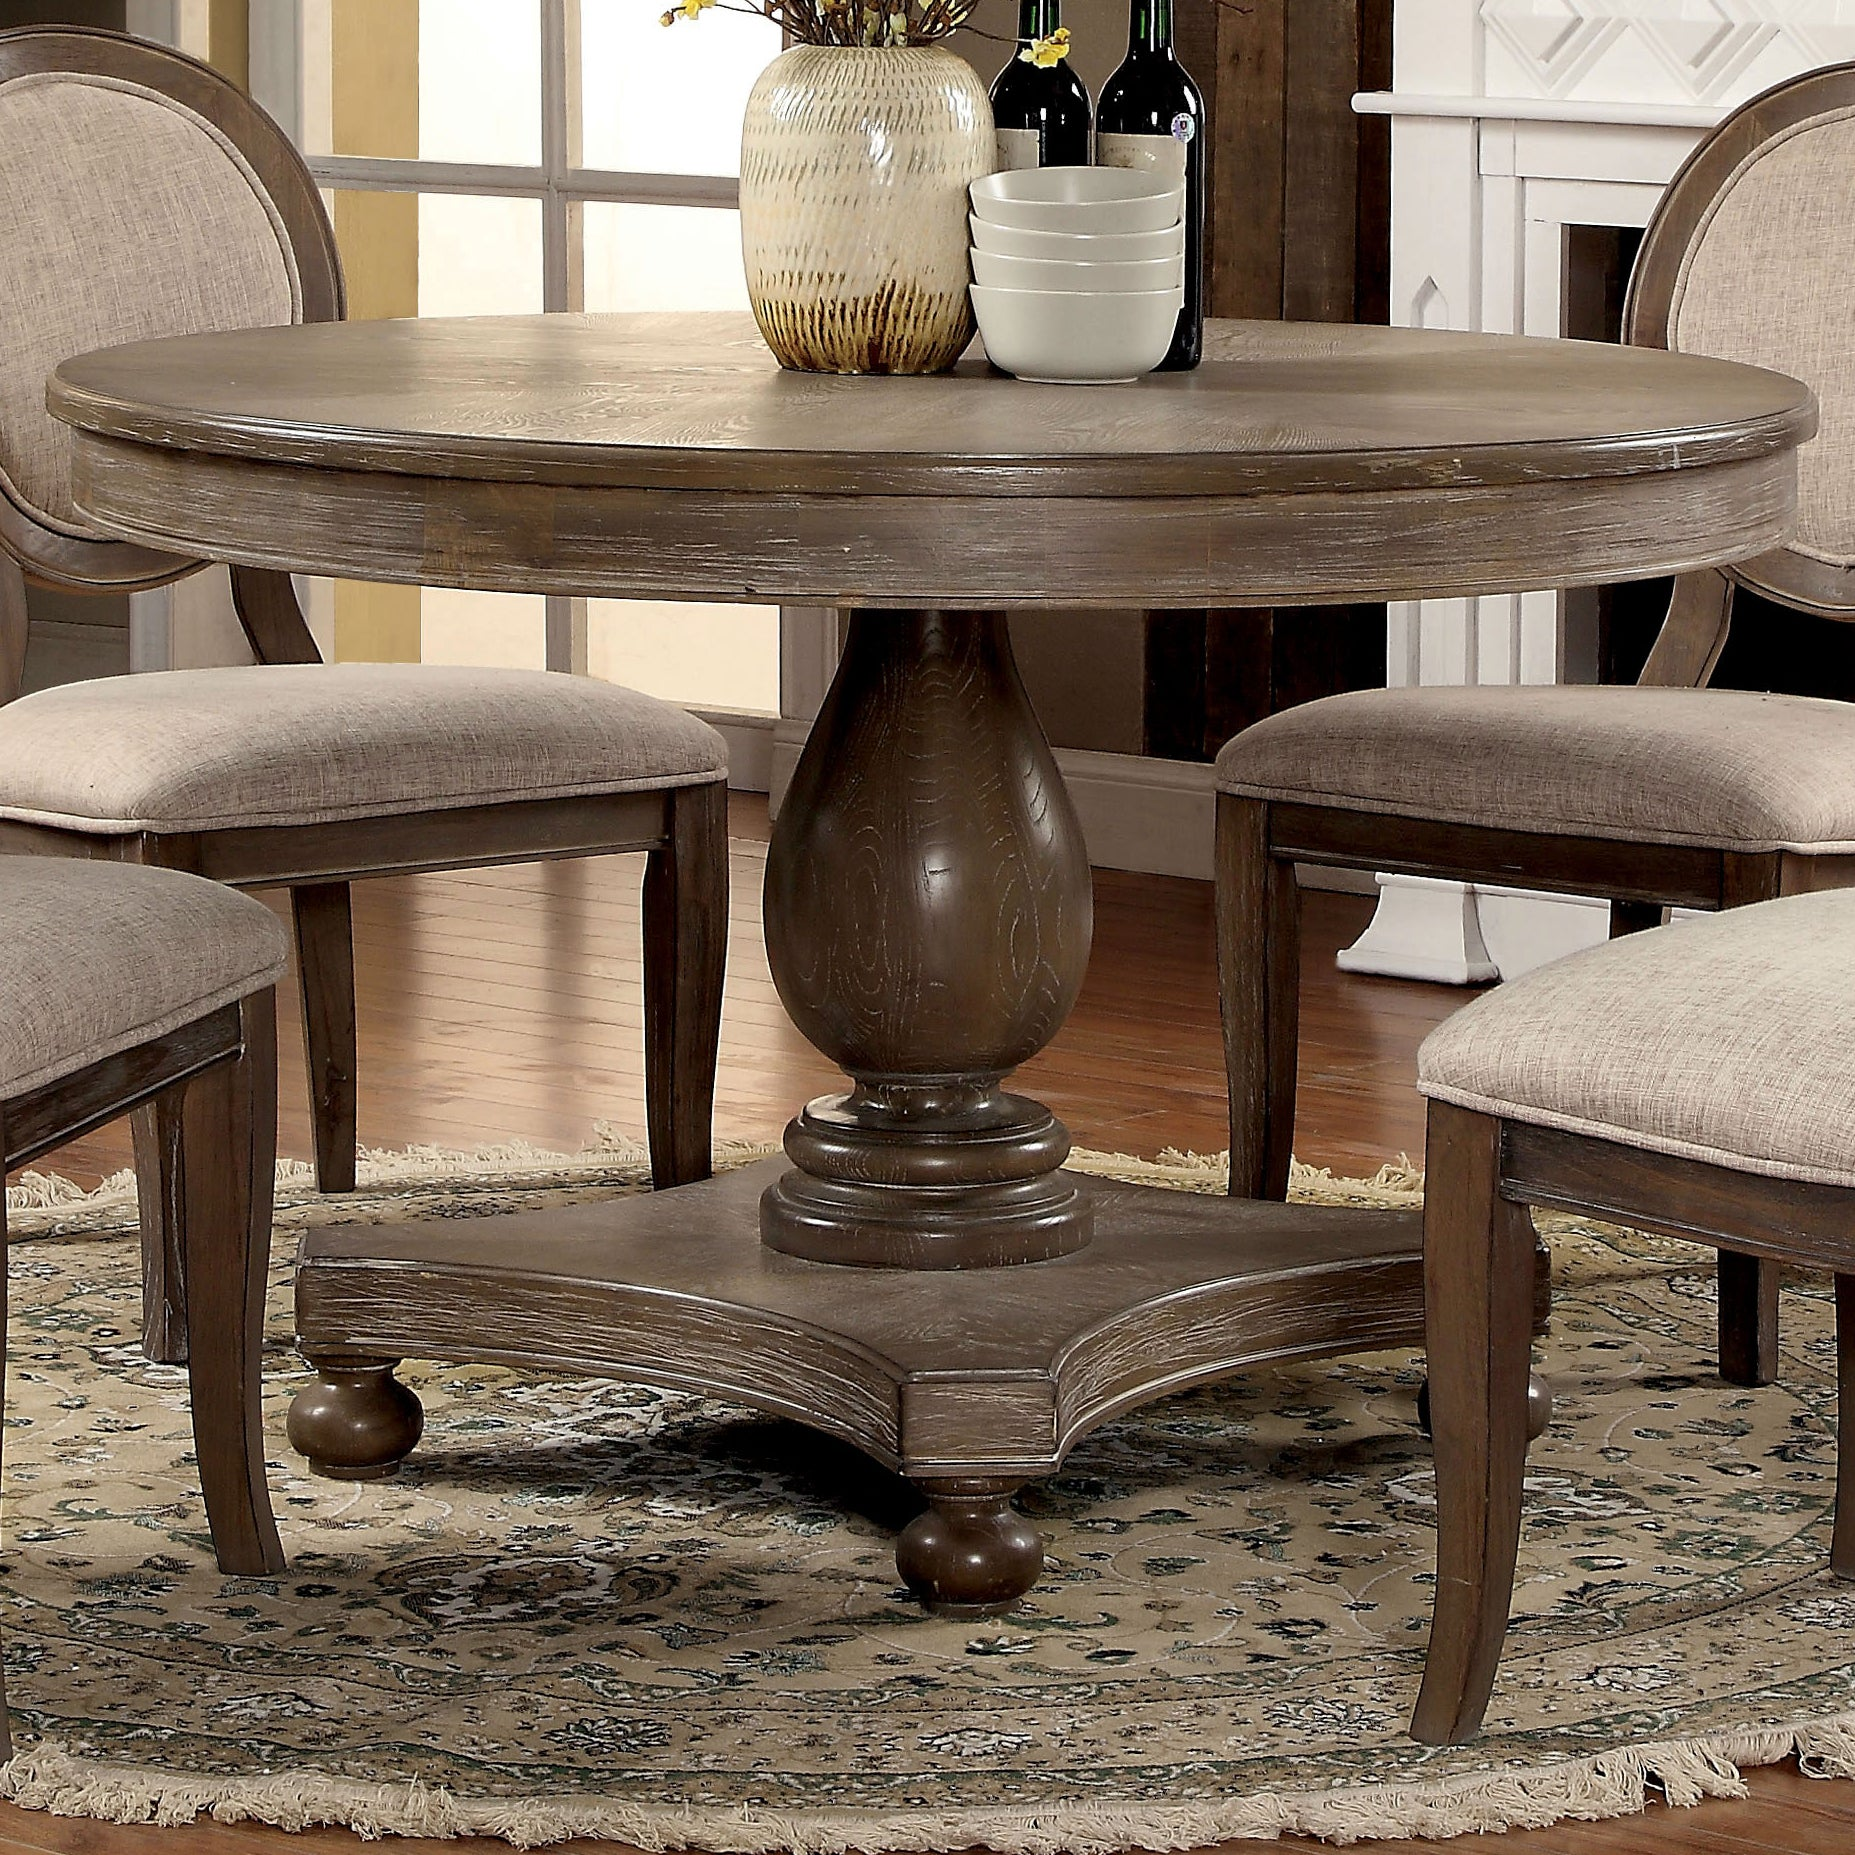 ak1ostkcdncomimagesproducts17520815Furniture